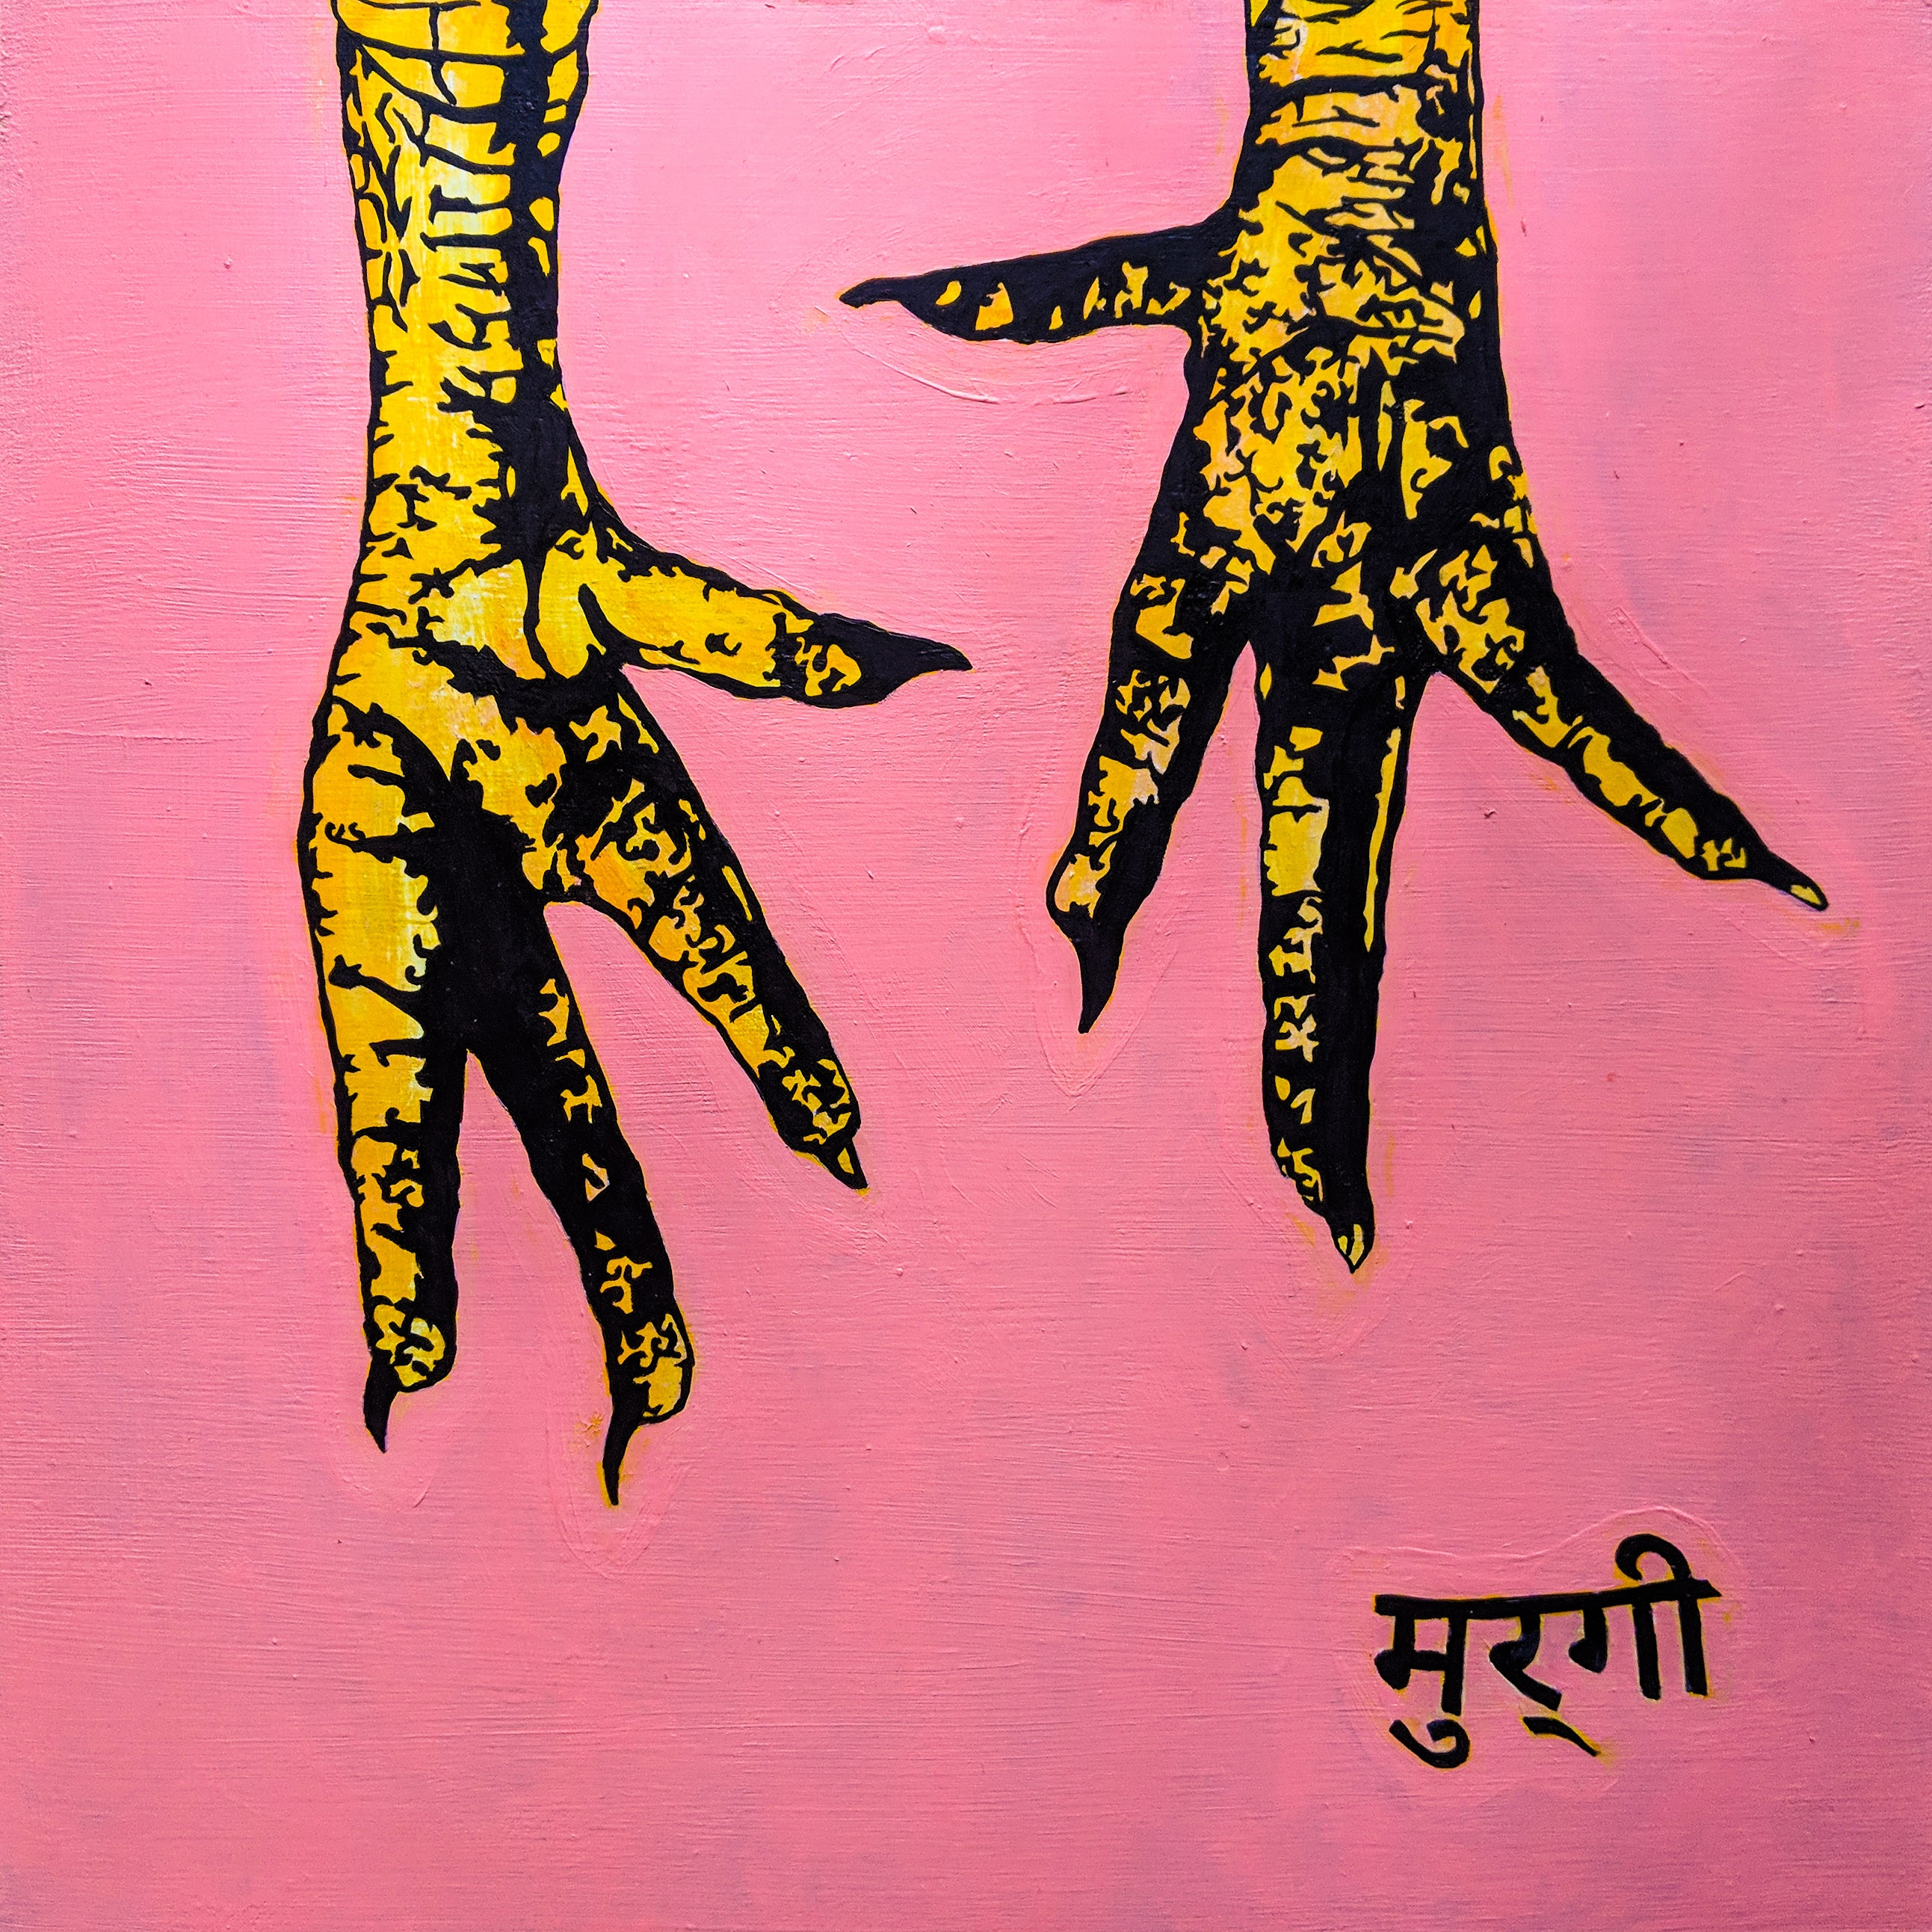 Yellow Chicken Feet Outlined in Black Dangling from the top of the image with Hindi word for Chicken on the bottom right.